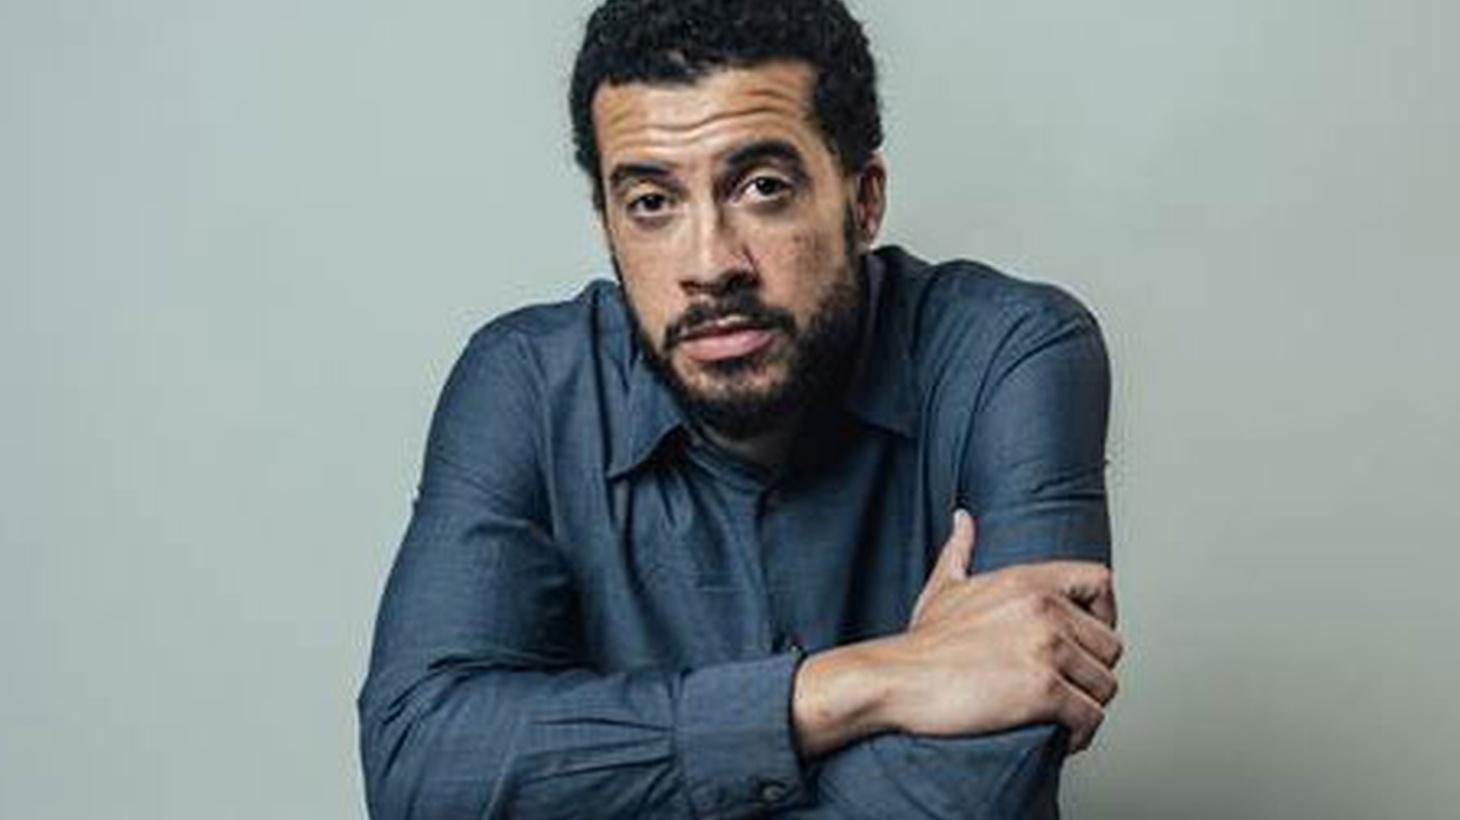 When ESPN approached Ezra Edelman about doing a massive documentary on O.J. Simpson, he had little interest in following the beats of the so-called trial of the century. Instead, he saw the project as a lens through which to examine race in America. He tells us about seeking out tough interviews and how his opus grew from five hours to nearly eight.